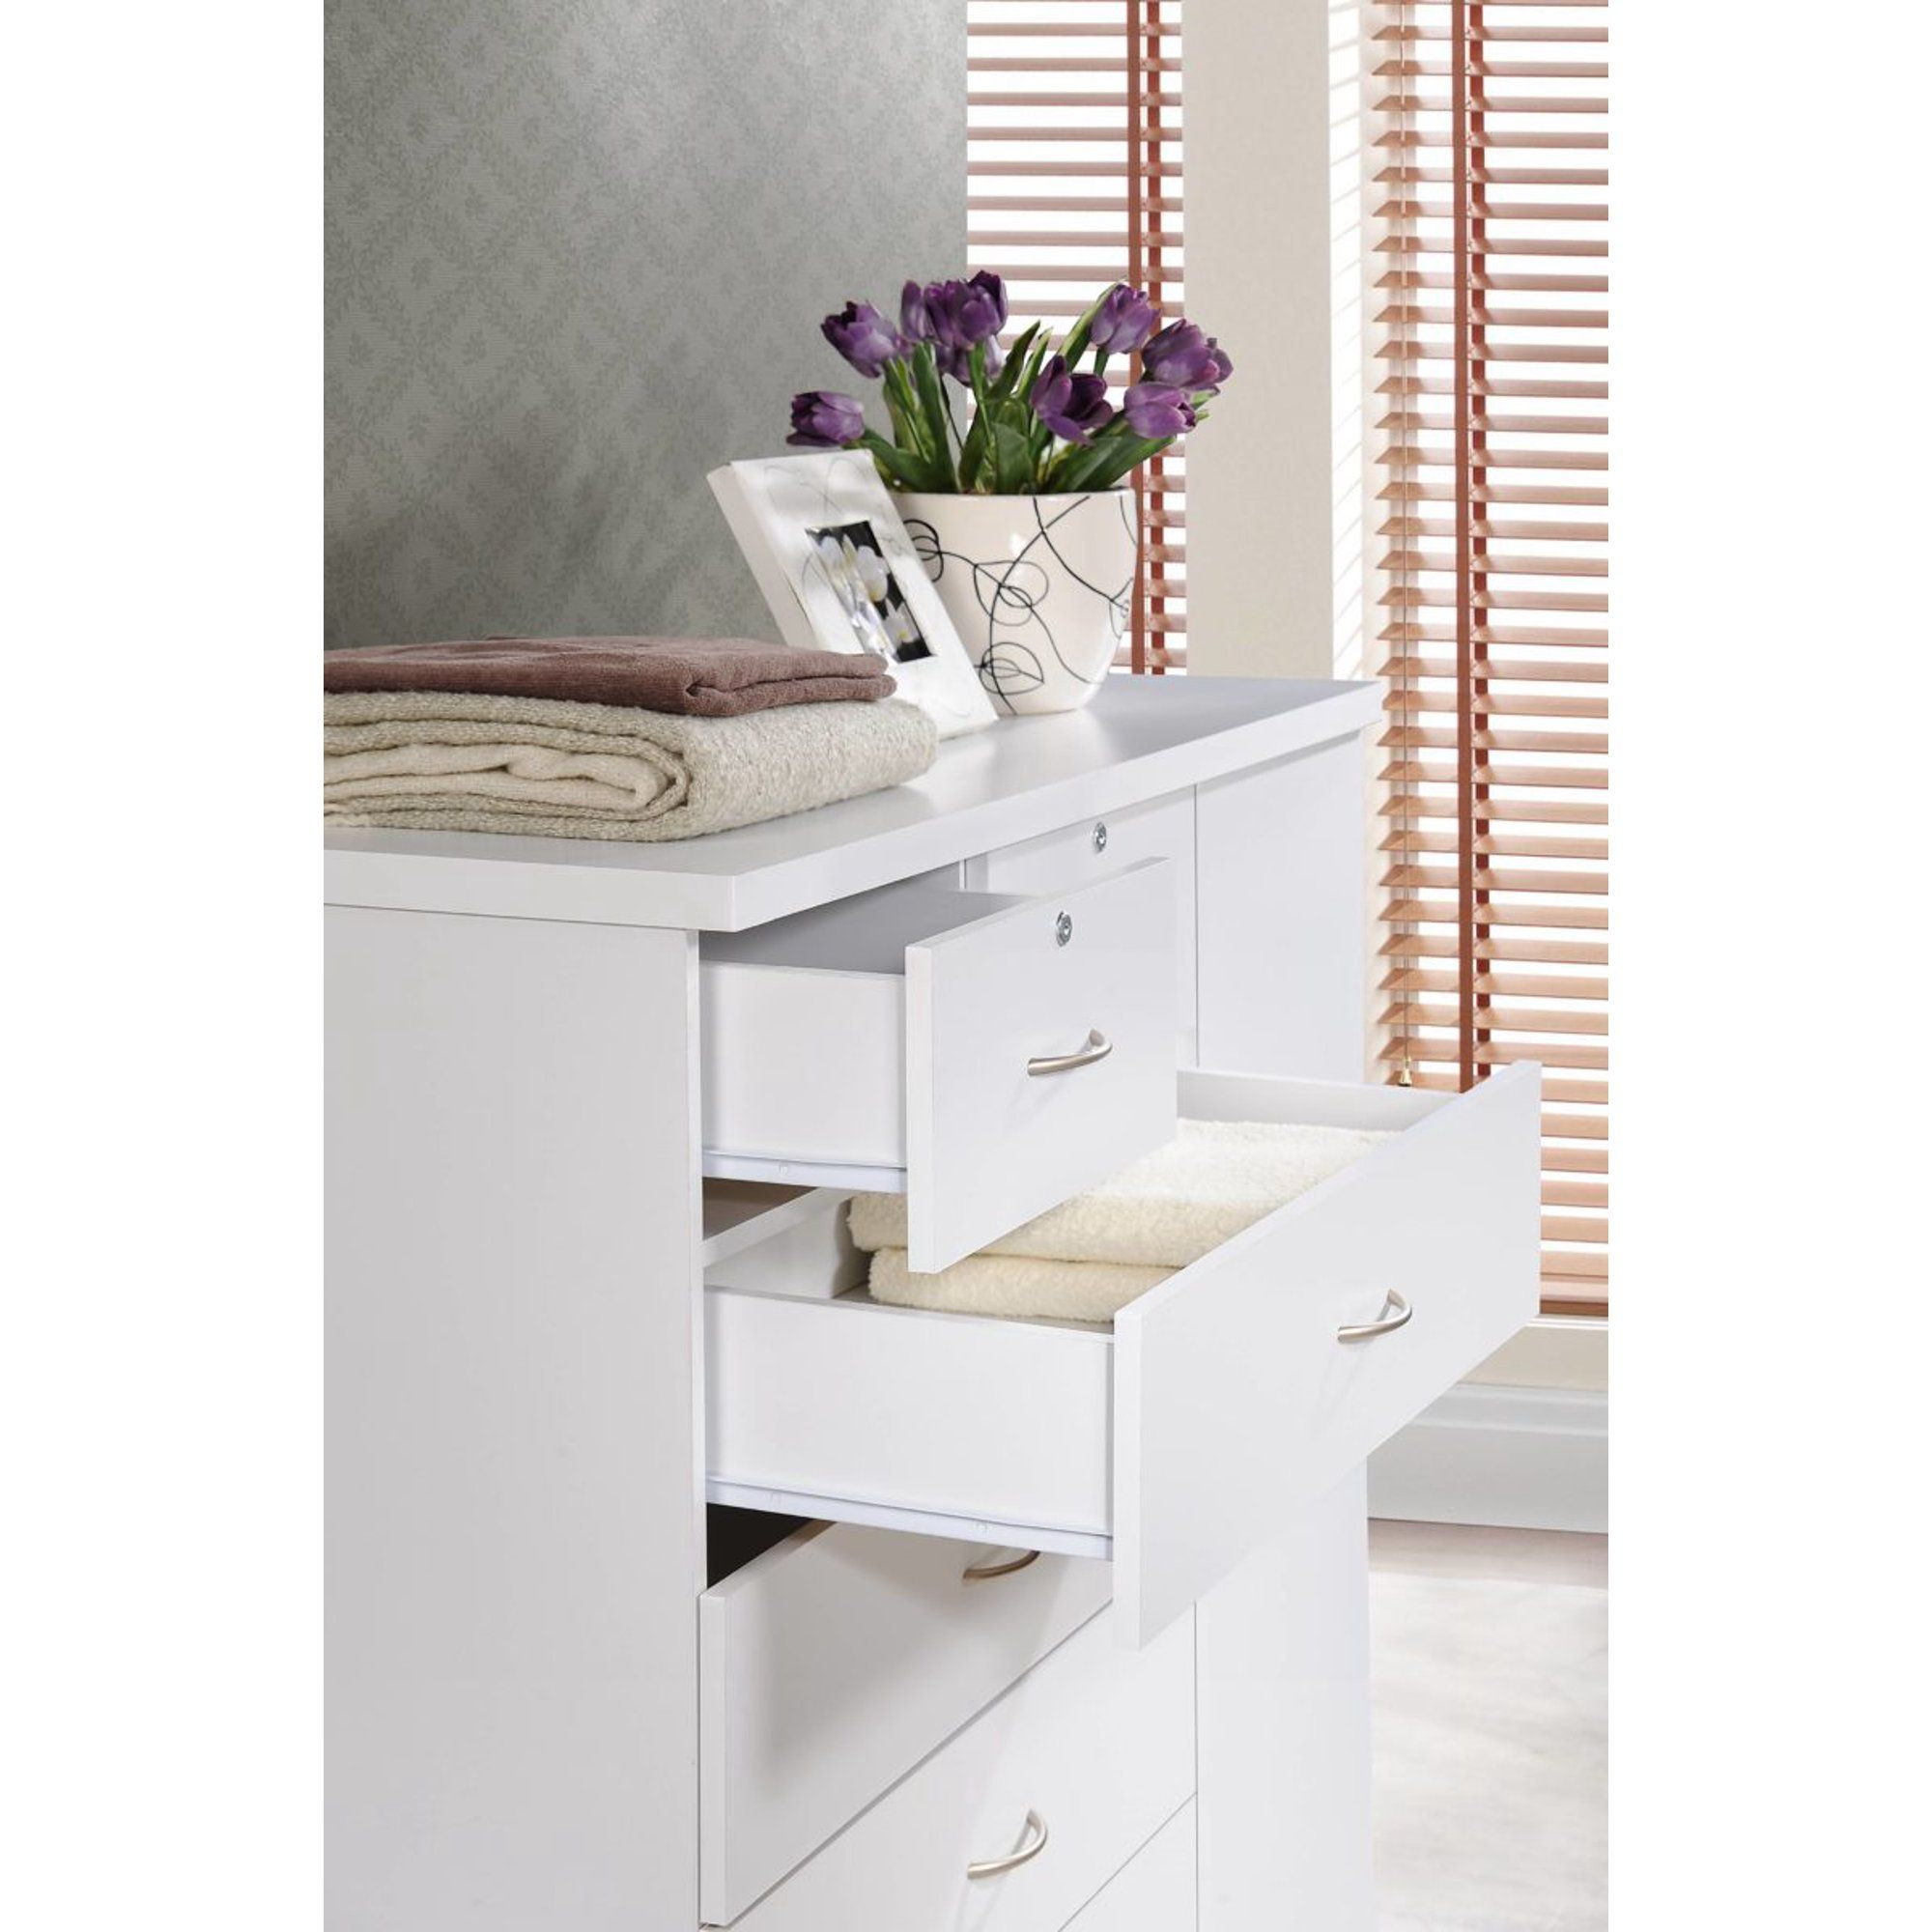 Hodedah 7 Drawer Dresser With Side Cabinet Equipped With 3 Shelves White Walmart Com In 2021 Dresser Drawers Dresser Shelves Shelves [ 2000 x 2000 Pixel ]